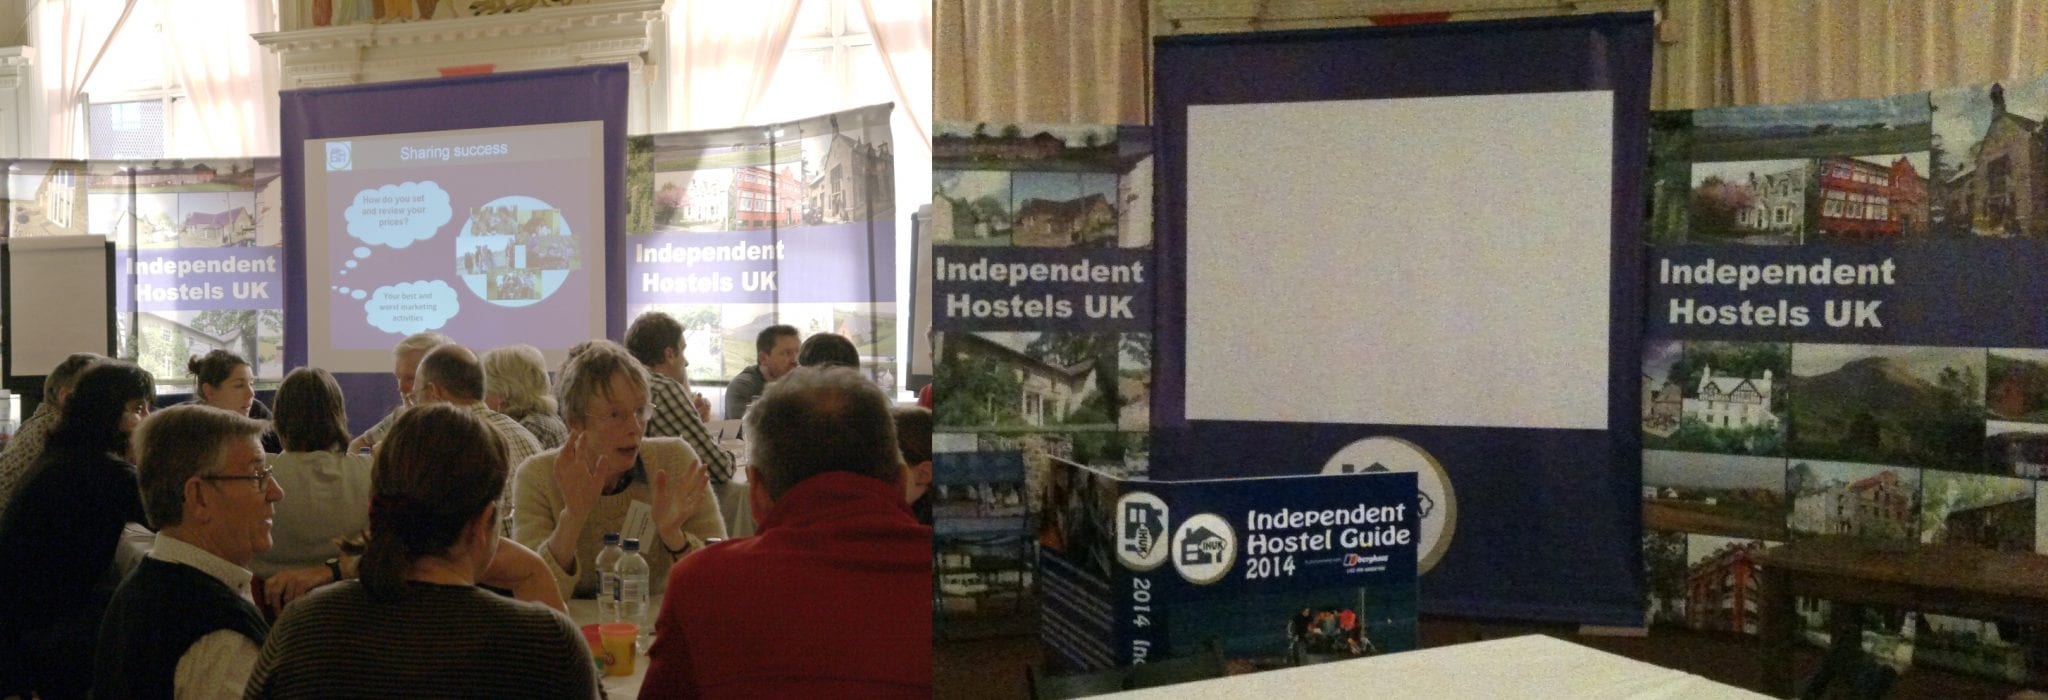 Independent Hostels conference